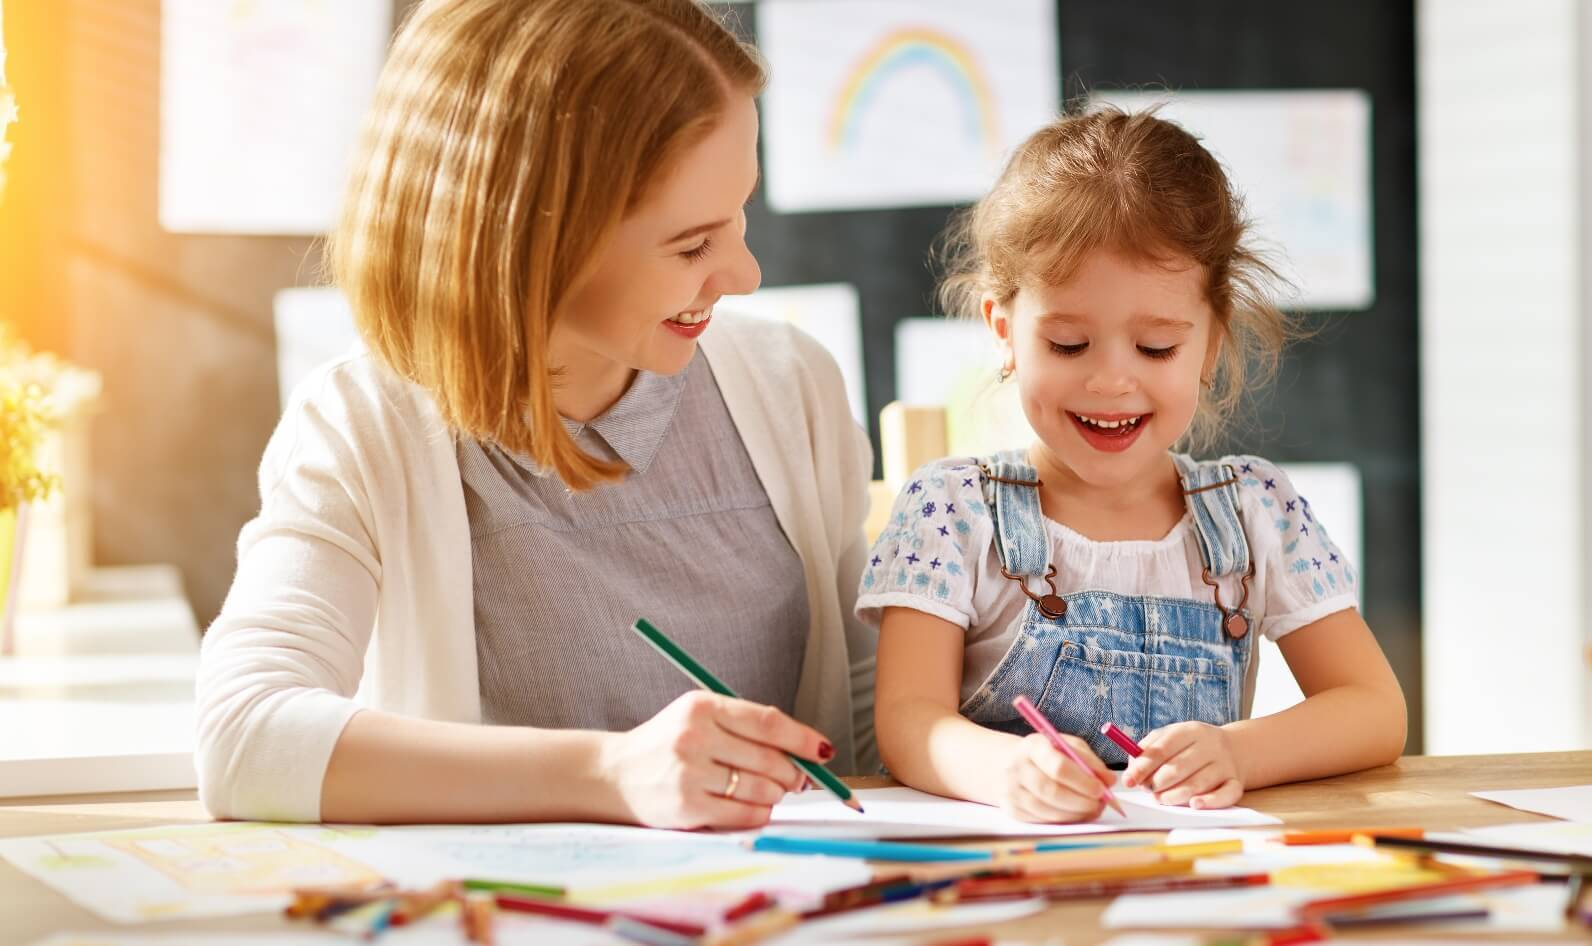 Connecting with Kids Through Art